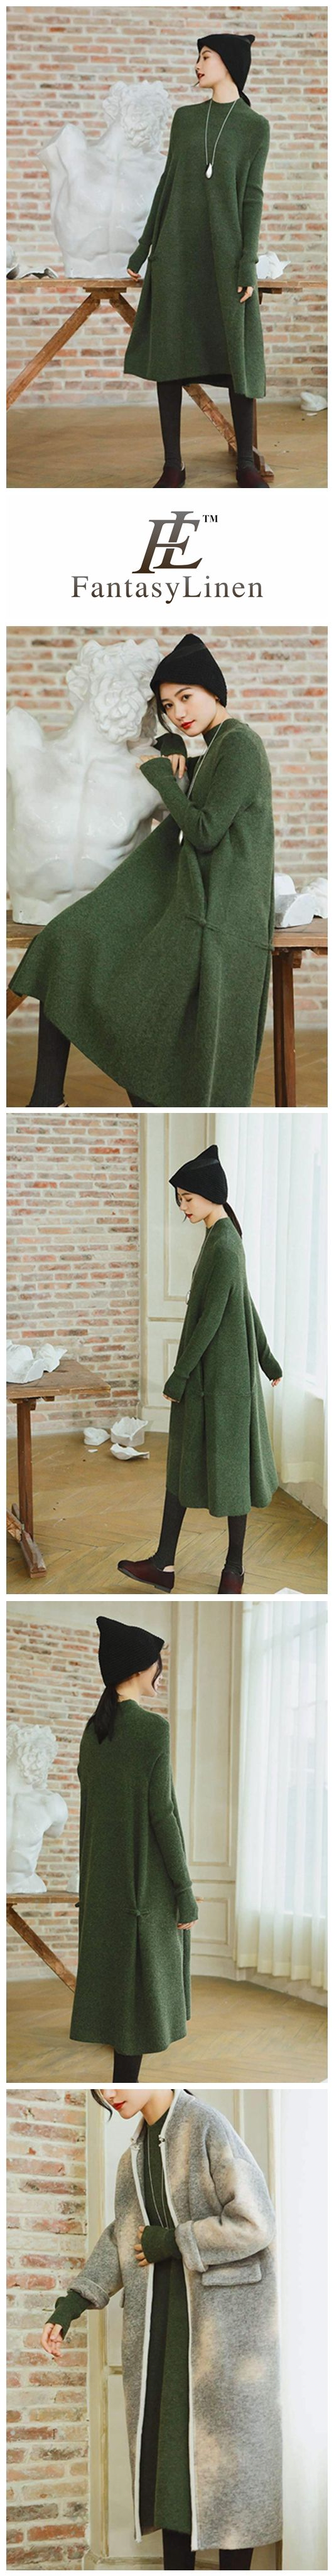 Thick Wool Maxi Green Sweater Dresses For Women Clothes,Winter Party Dress Q2711